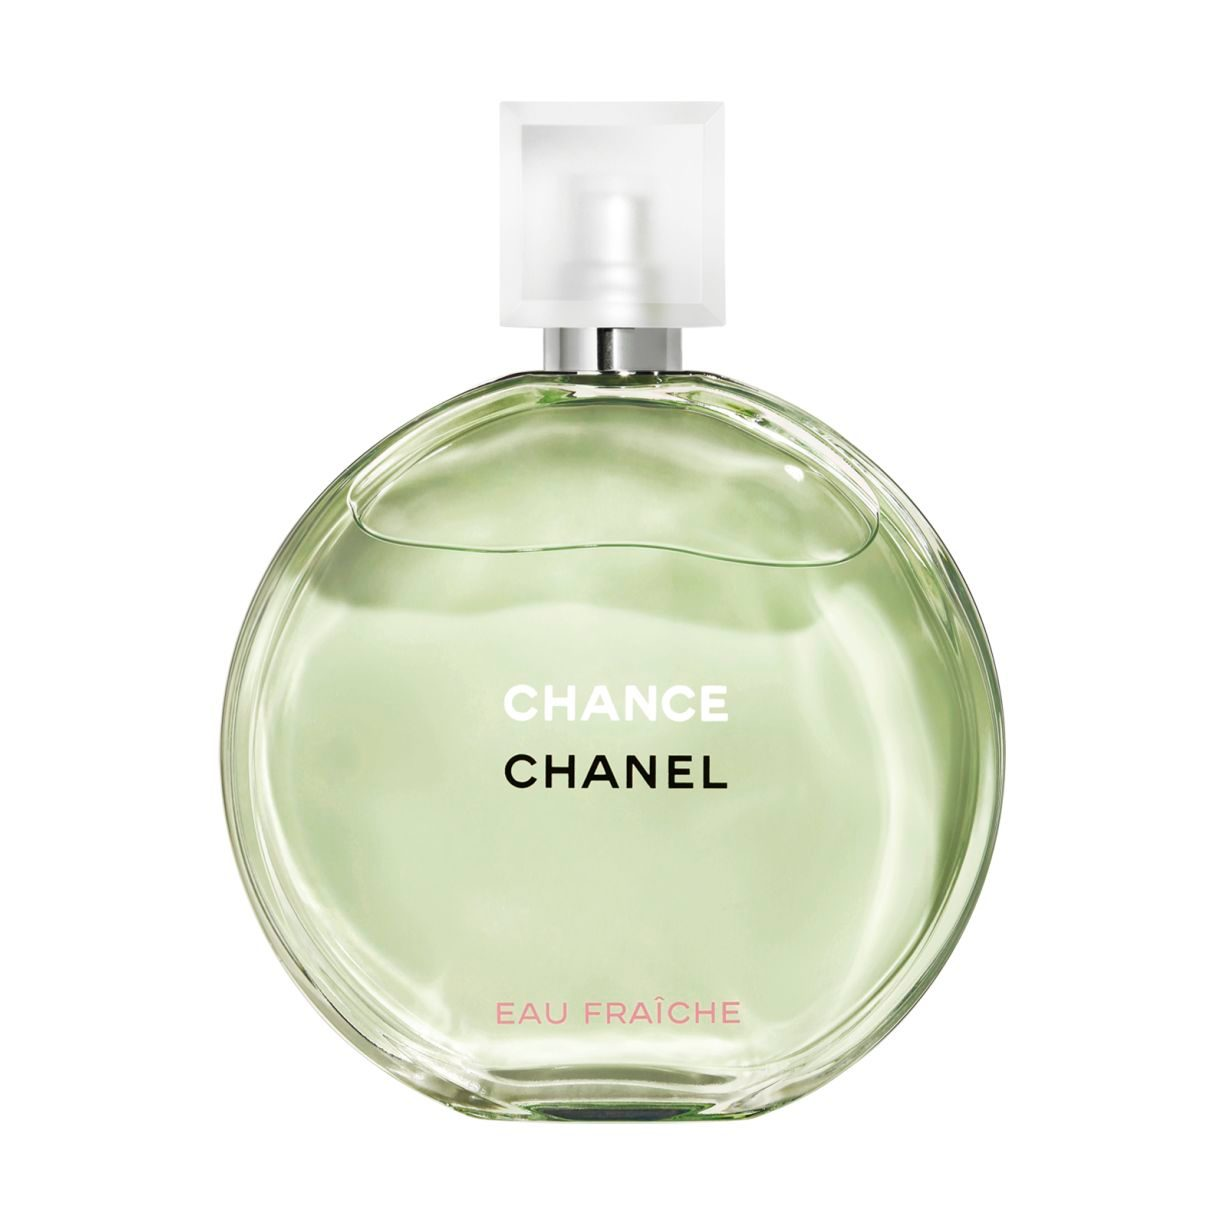 CHANCE EAU FRAICHE EAU DE TOILETTE SPRAY 100ml